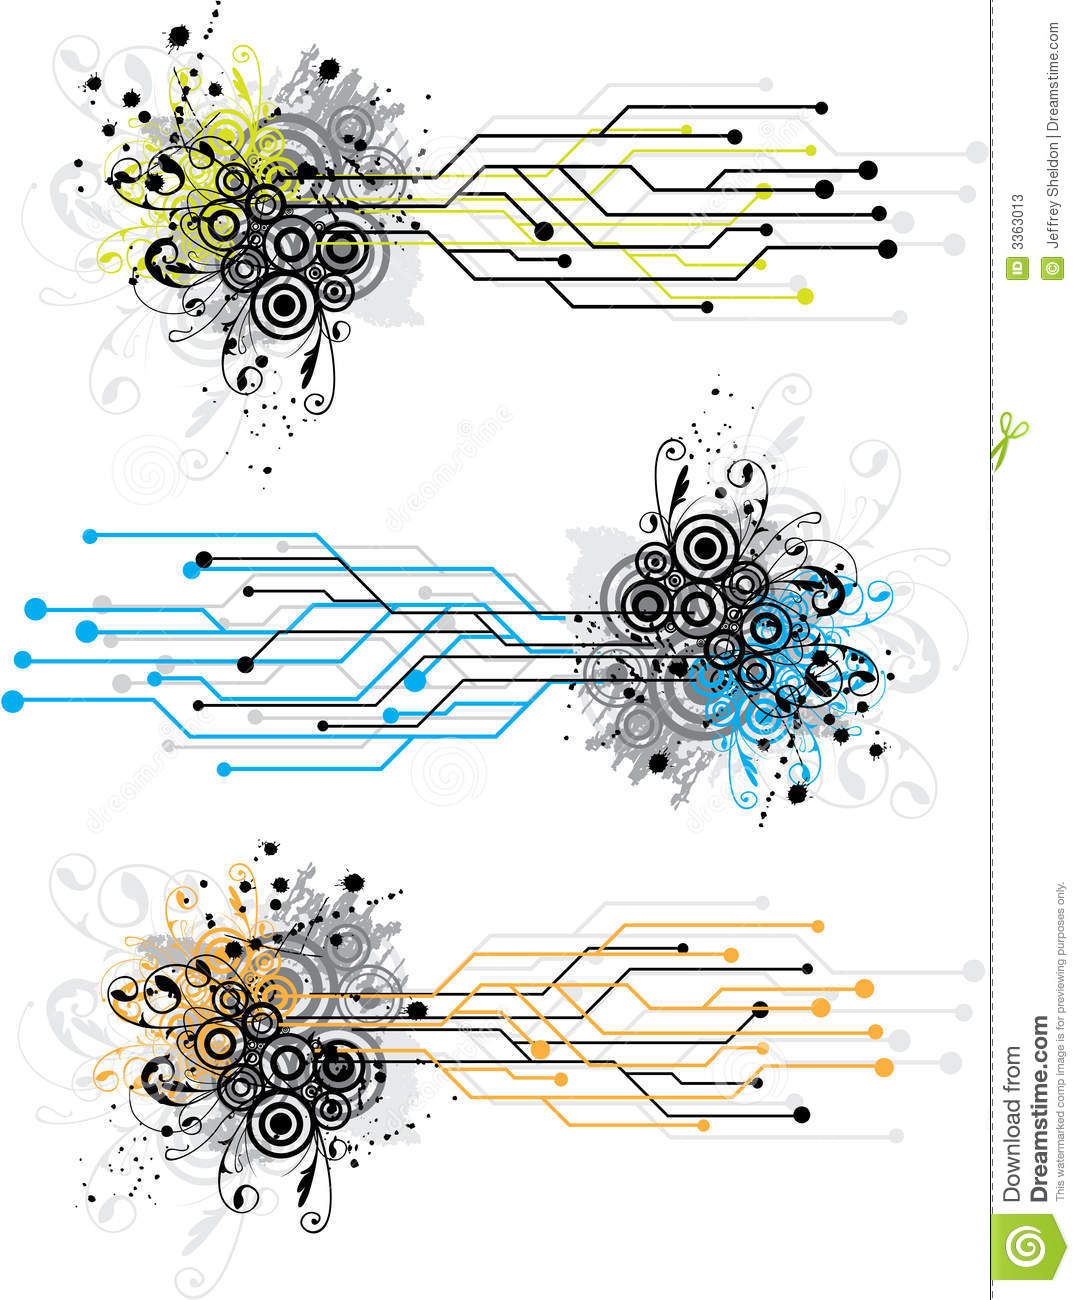 grunge circuit board design stock vector image 3363013